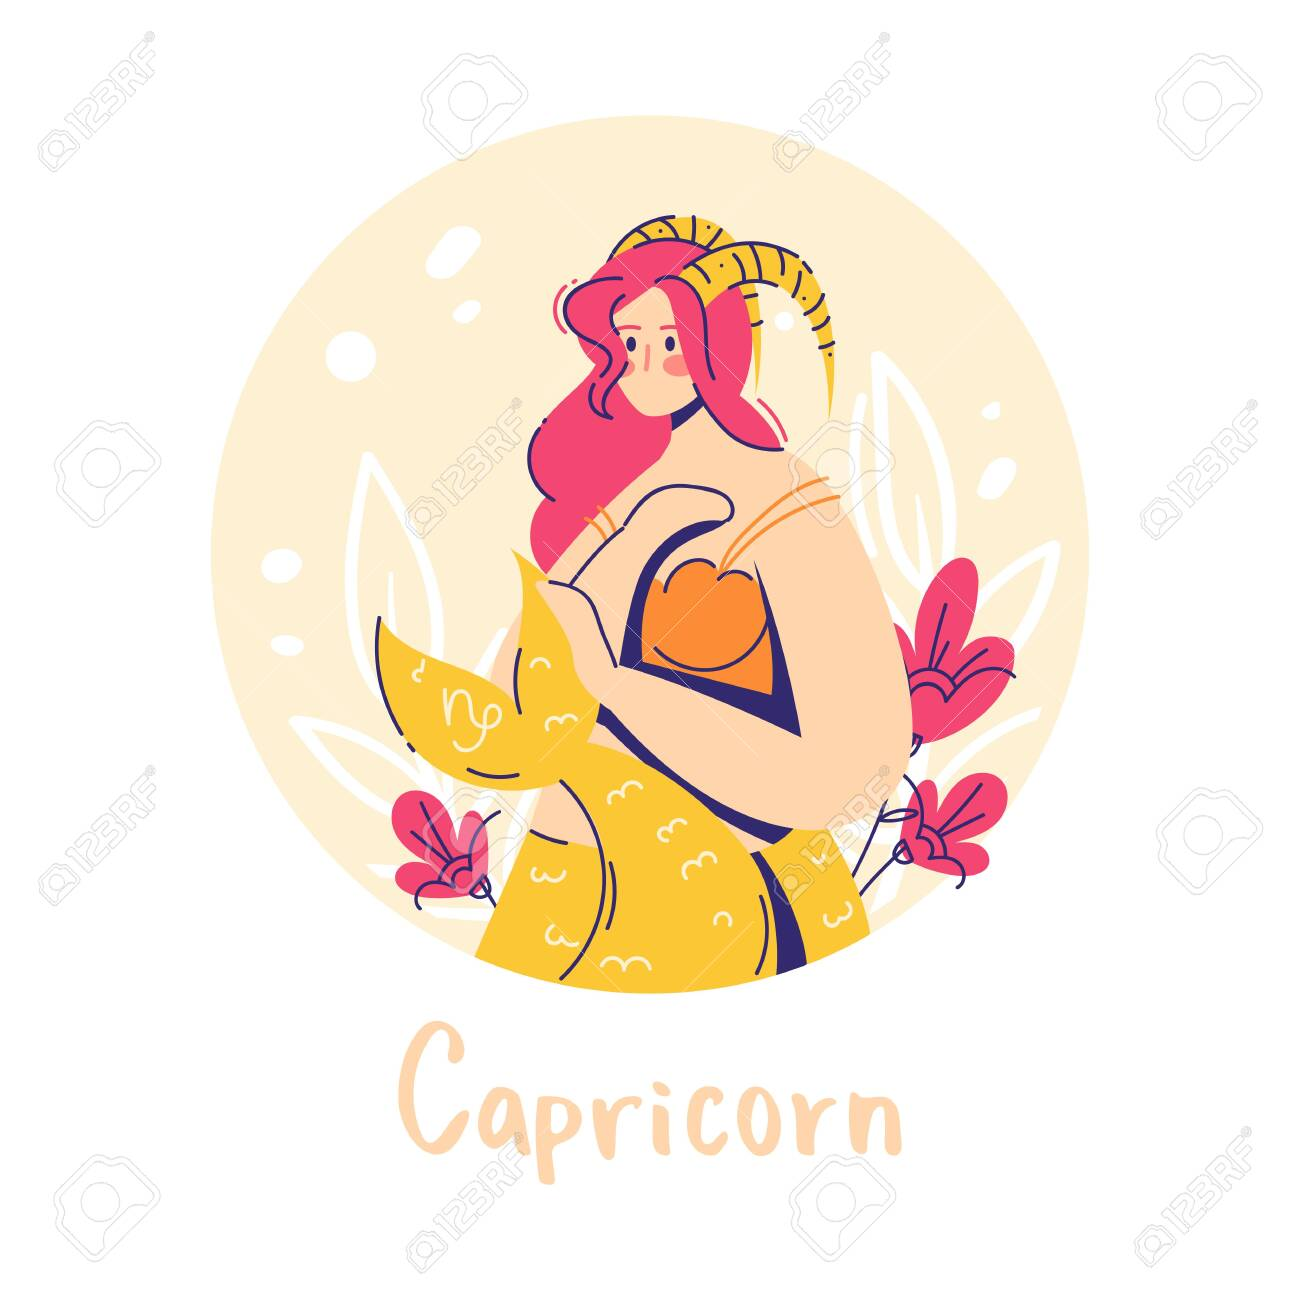 Capricorn zodiac sign. Earth. Female character and element of ancient astrology. - 149455049